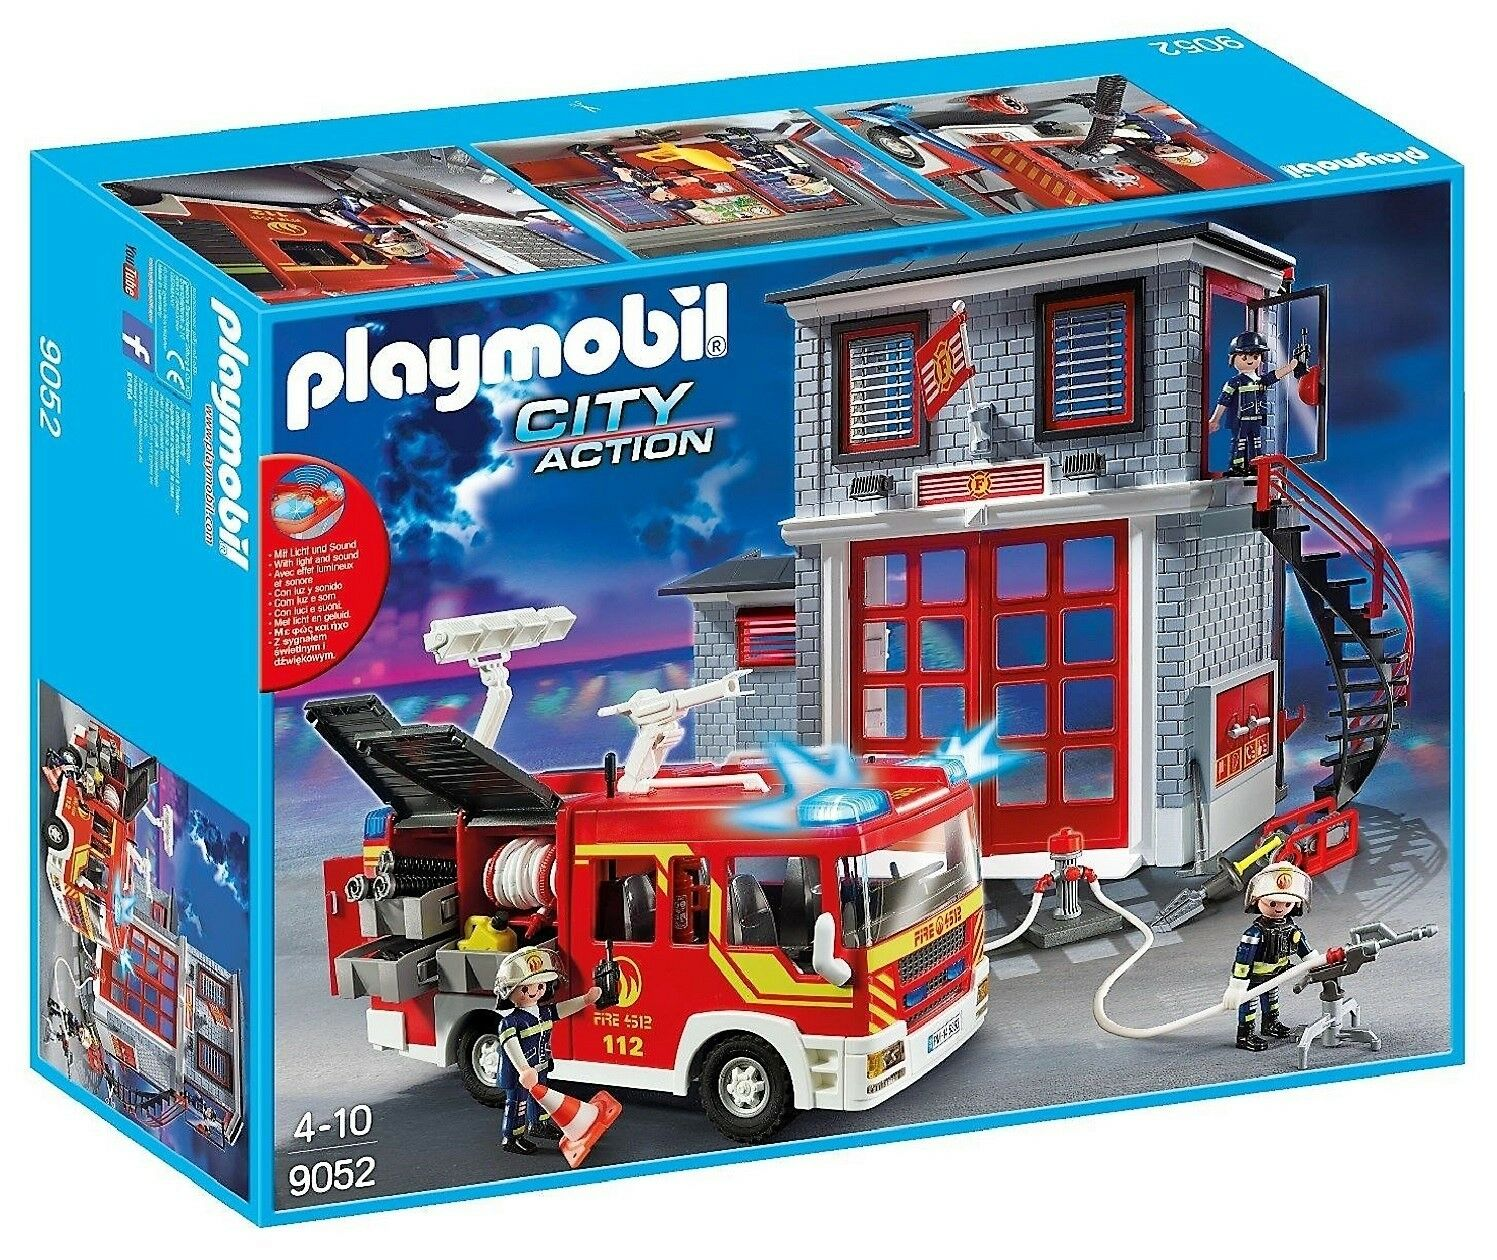 playmobil 9052 feuerwehr mega set city action neu ovp mit lkw haus pumpe eur 63 95. Black Bedroom Furniture Sets. Home Design Ideas